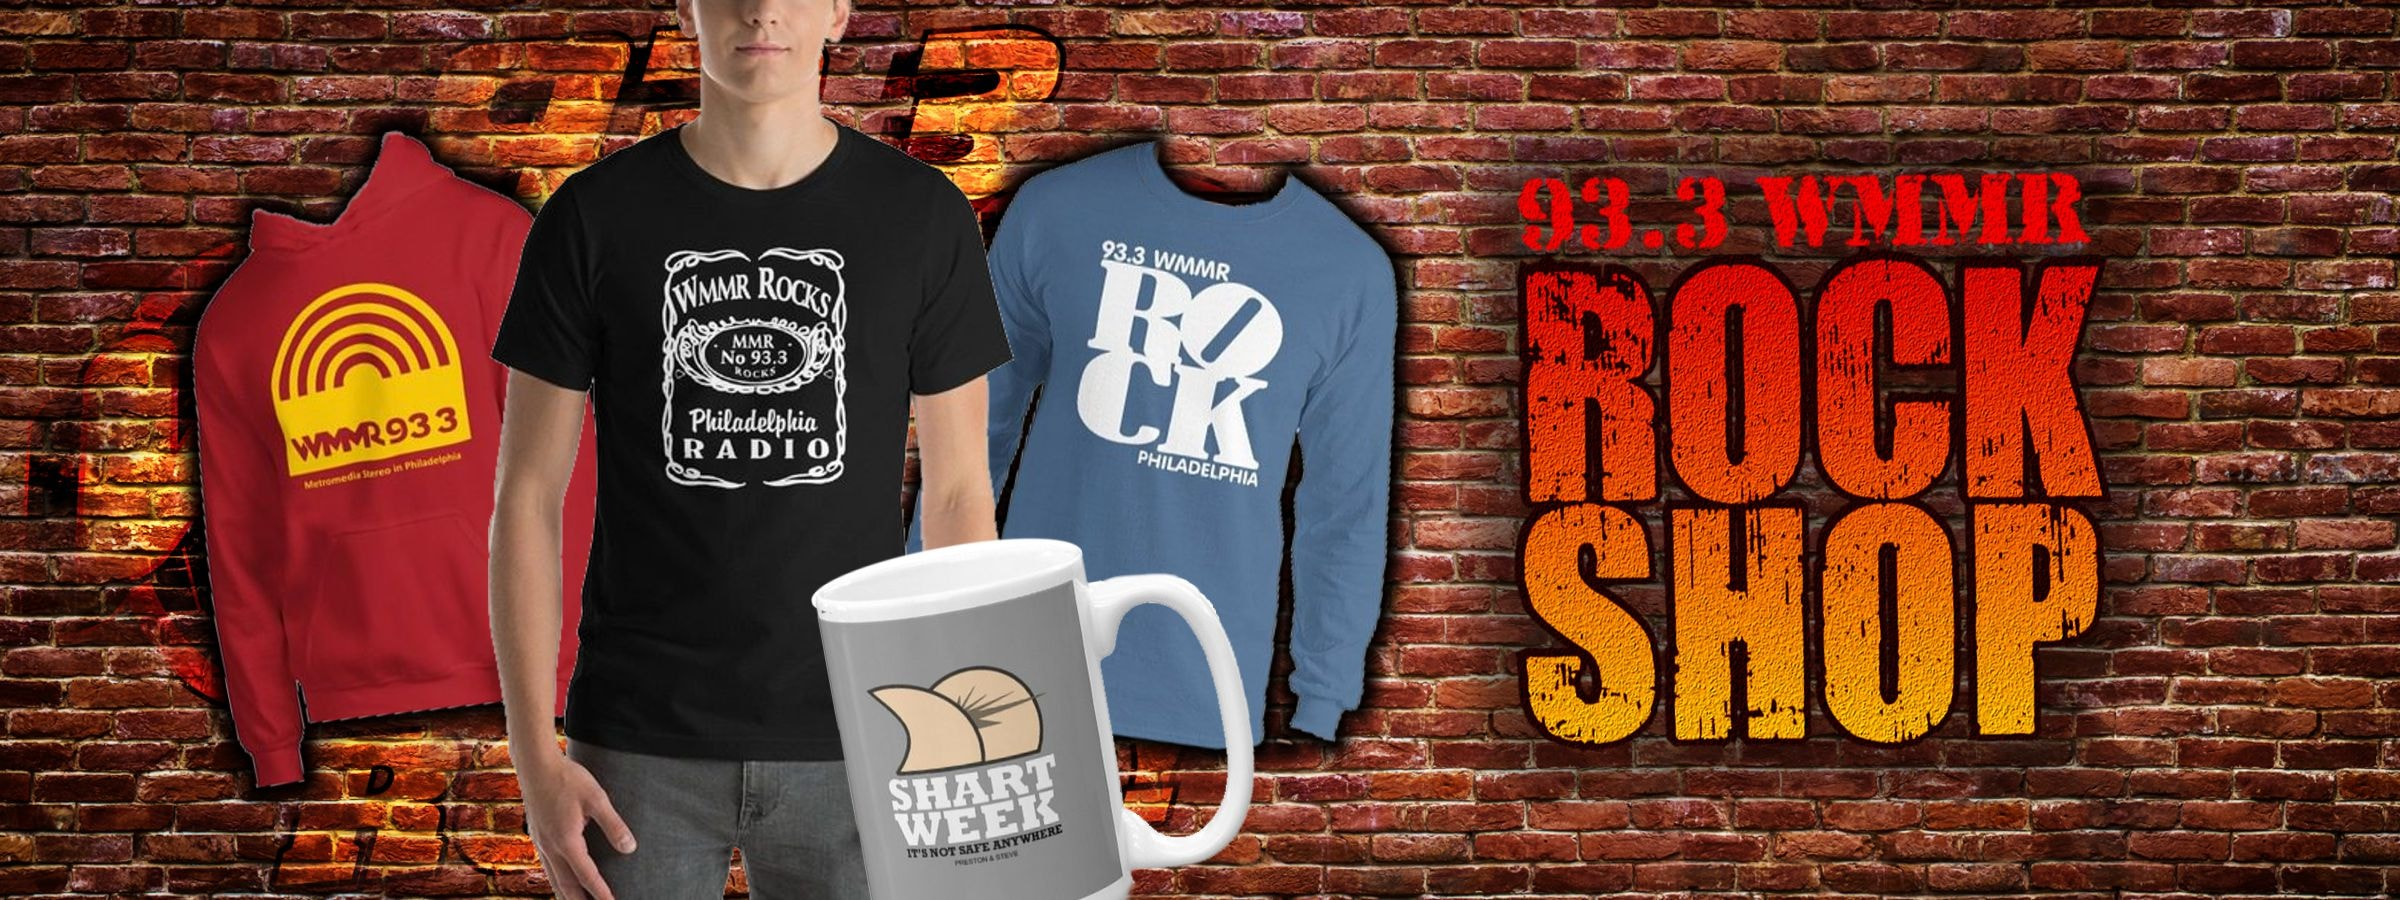 WMMR Rock Shop Shirts Mugs etc